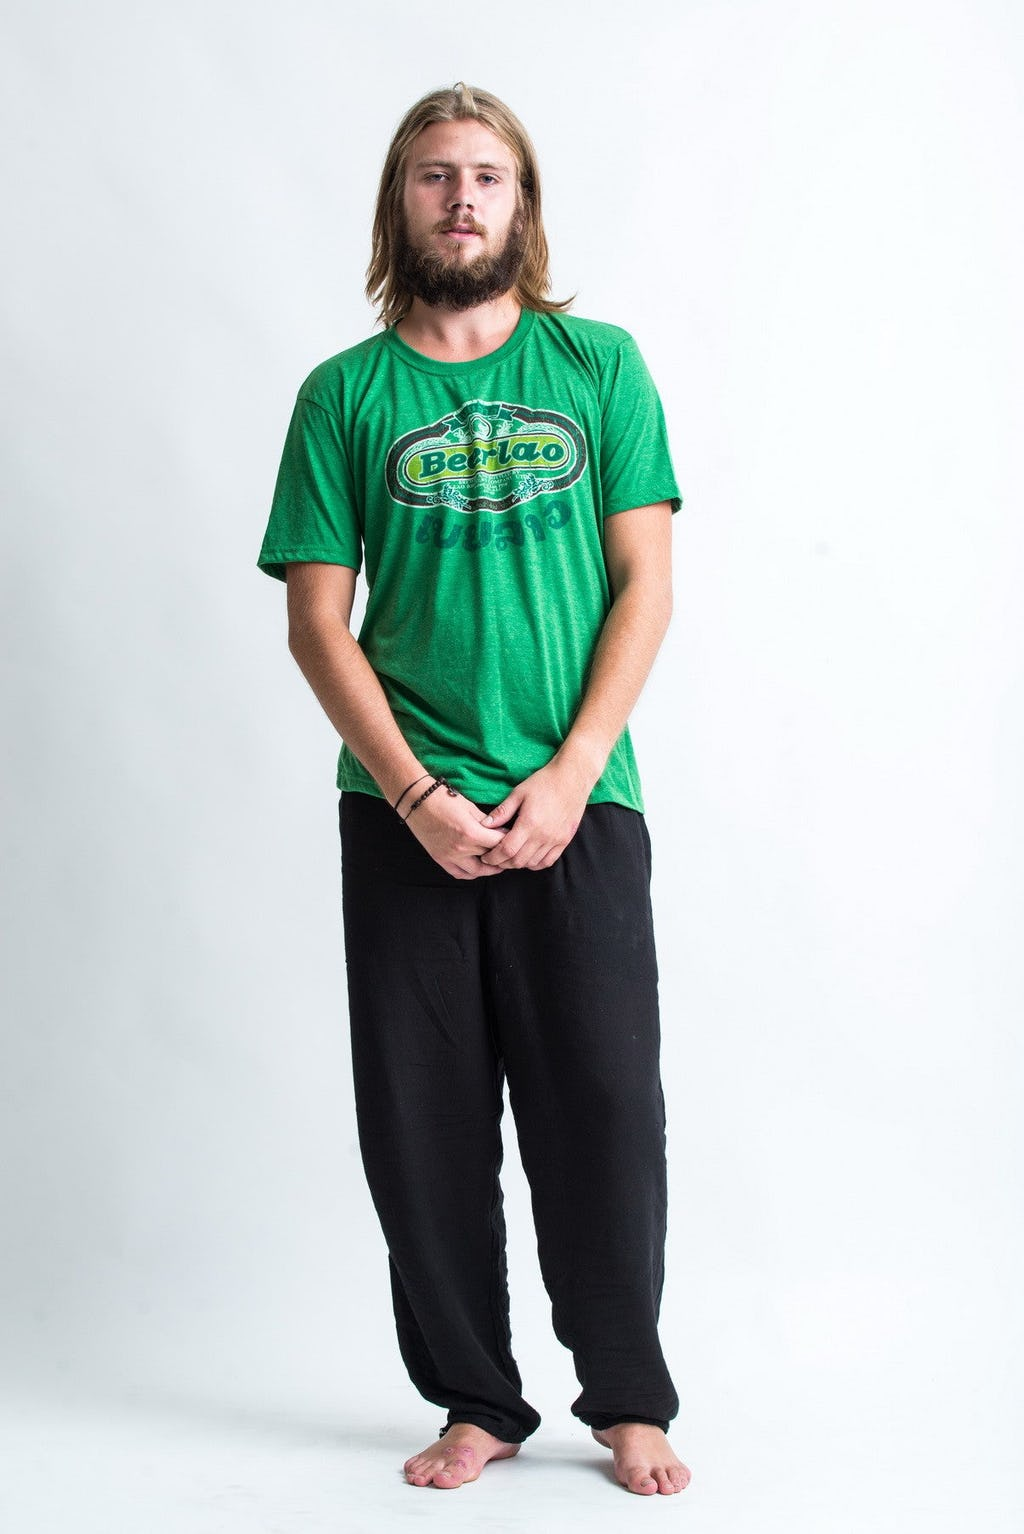 Sure design t shirts and clothing - Sure Design Super Soft Vintage Style Thai Beer Lao Shirt Green